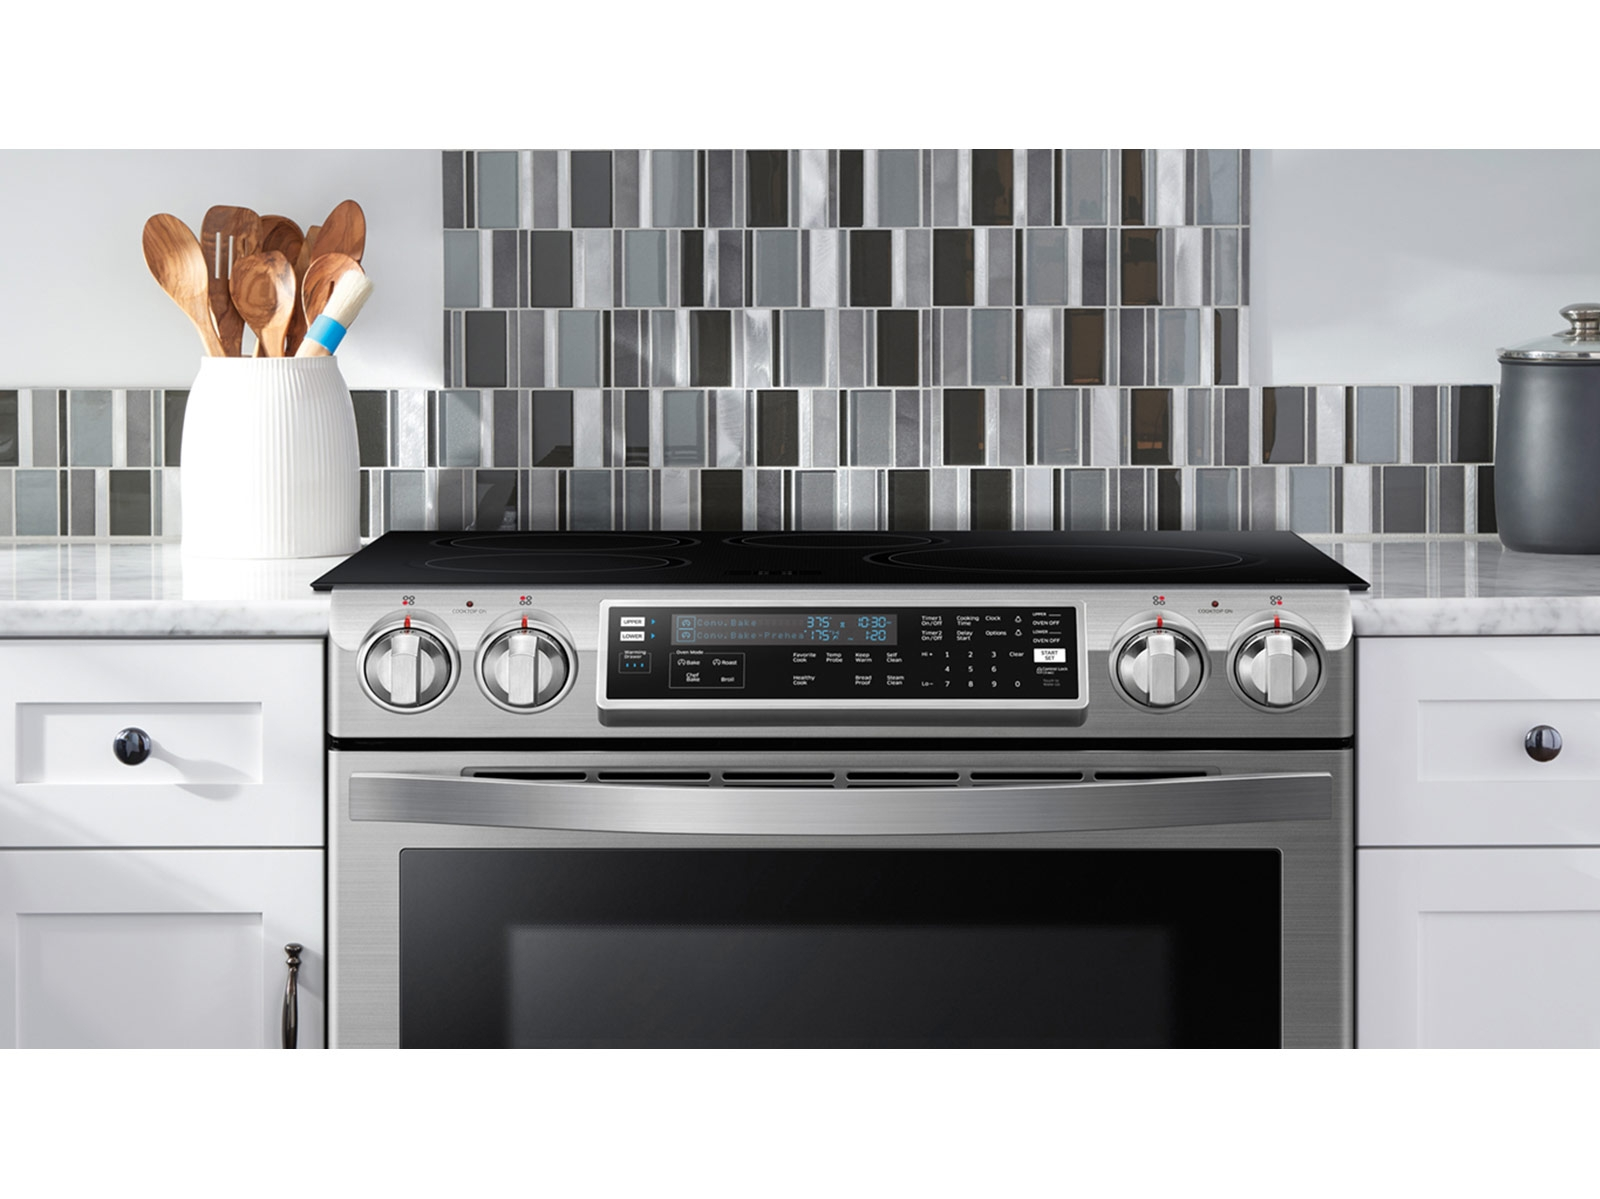 5 8 Cu Ft Slide In Induction Chef Collection Range With Flex Duo Oven Ranges Ne58h9970ws Aa Samsung Us